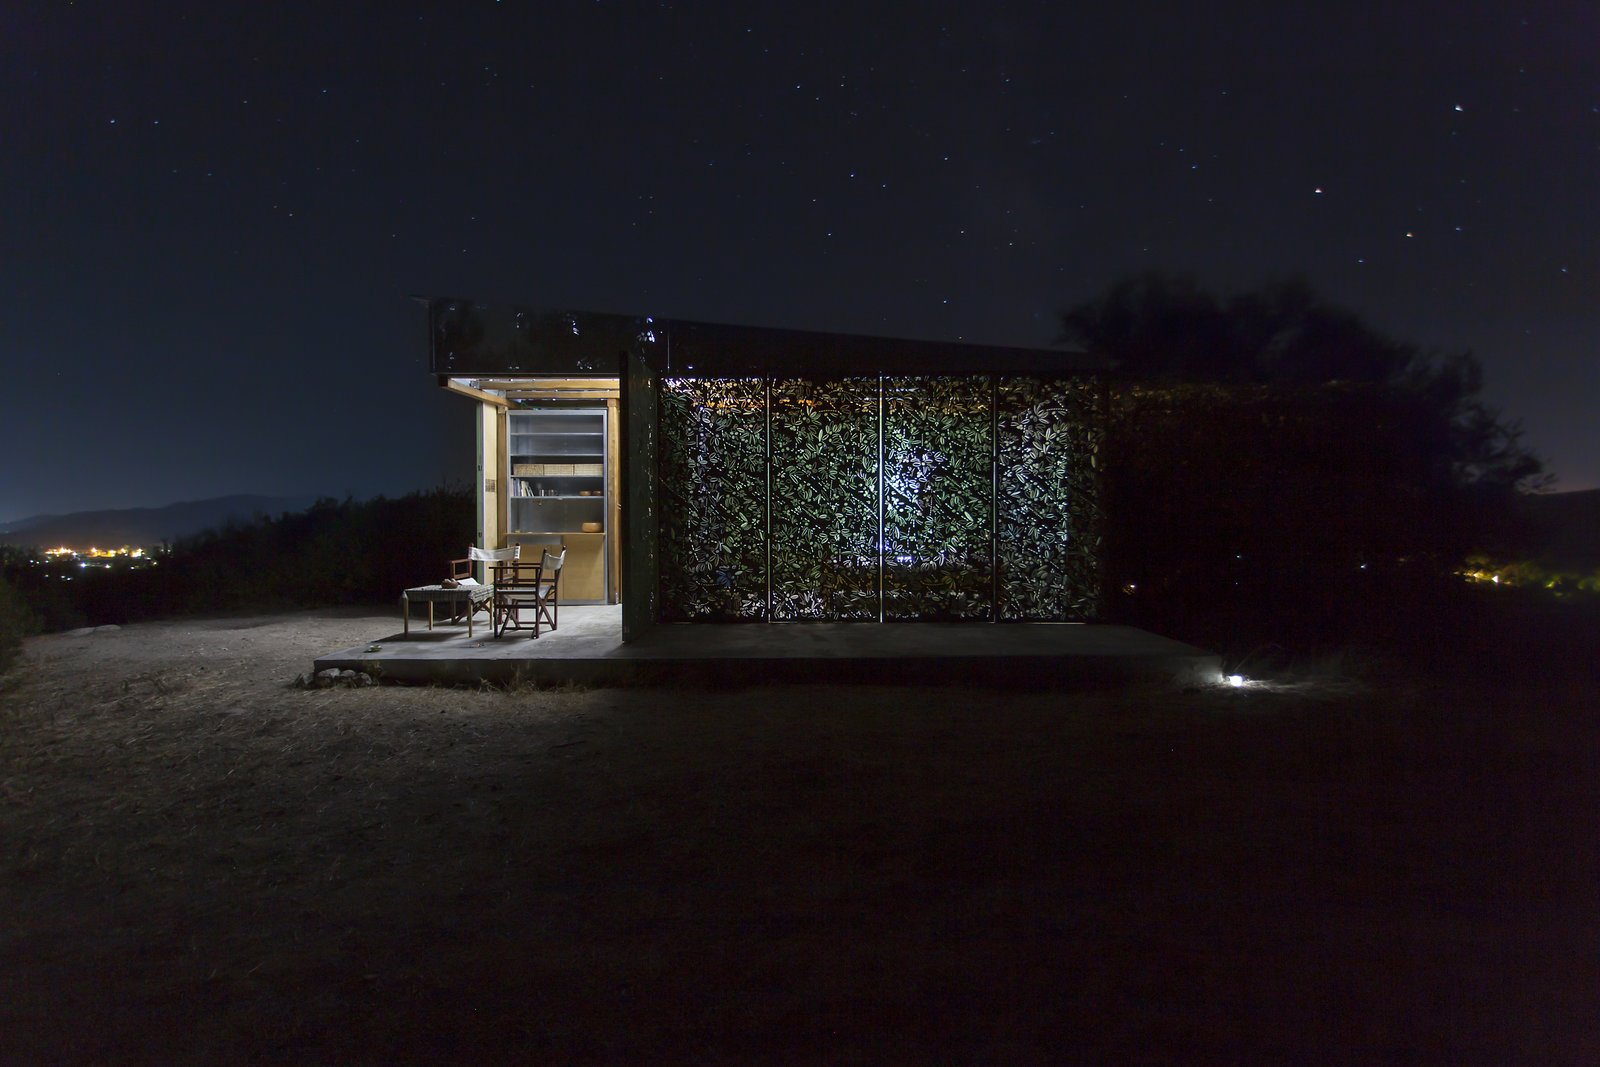 Wood Counter, Wood Cabinet, Concrete Floor, Metal Cabinet, Chair, Coffee Tables, Table, Trees, Shrubs, Small Patio, Porch, Deck, Exterior, Metal, Folding Door Type, Metal Counter, Living Space Room Type, Bed, Accent Lighting, Garden, Desert, and Hardscapes Night view  The Olive Tree House